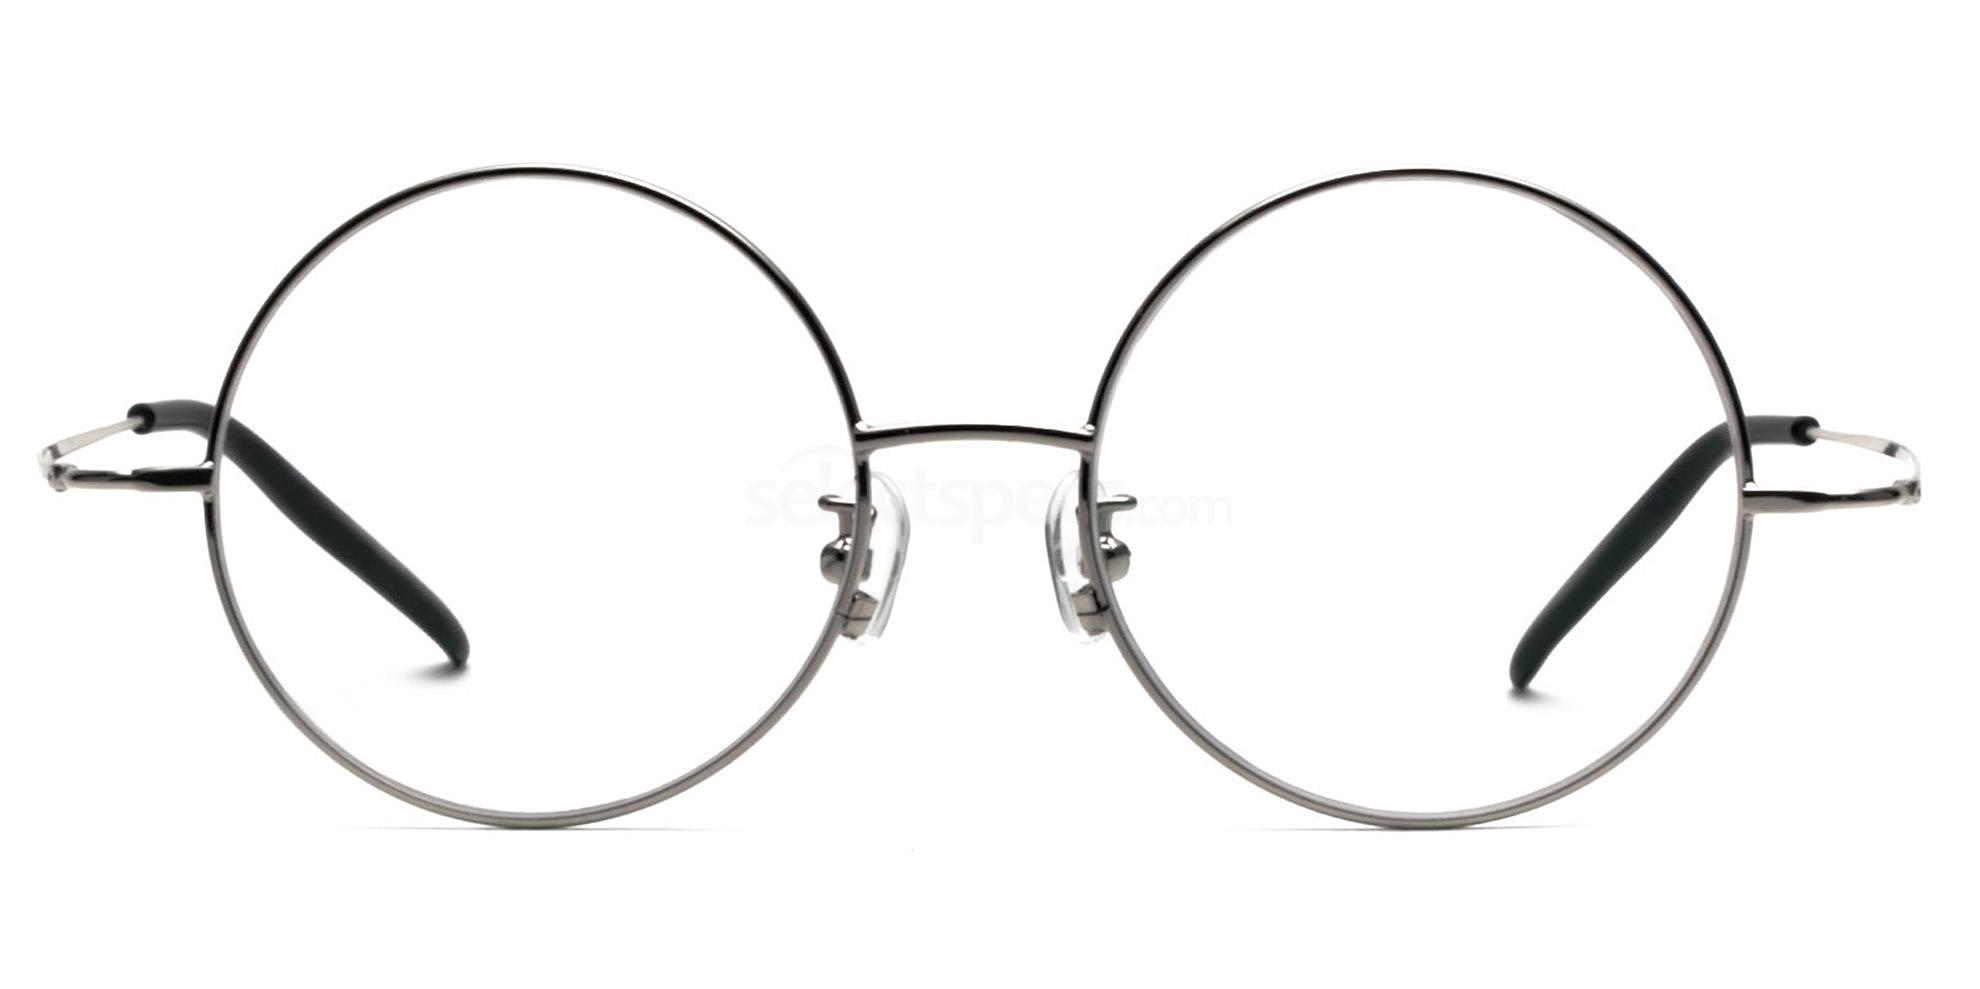 Infinity-silver-metal-round-glasses